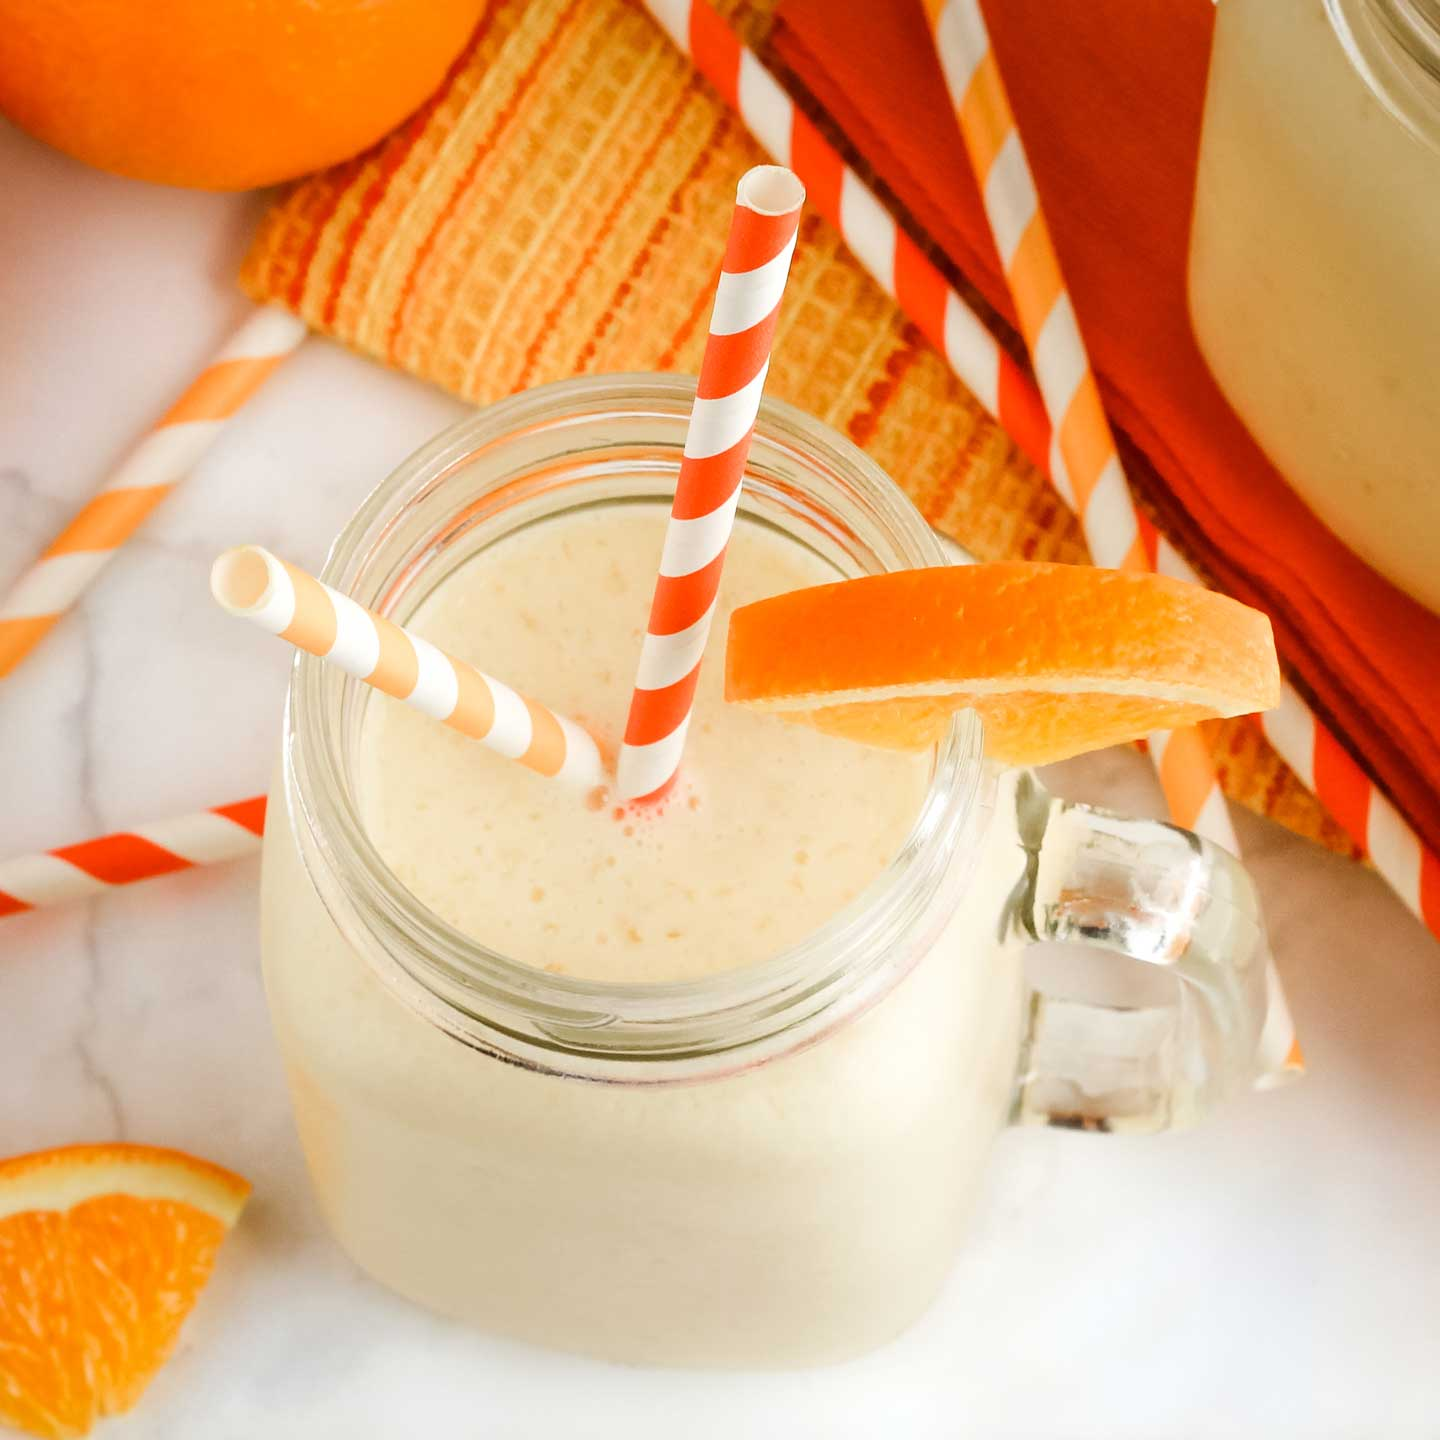 Finished smoothie in a clear glass mug with two striped orange straws and a wedge of orange on the rim.